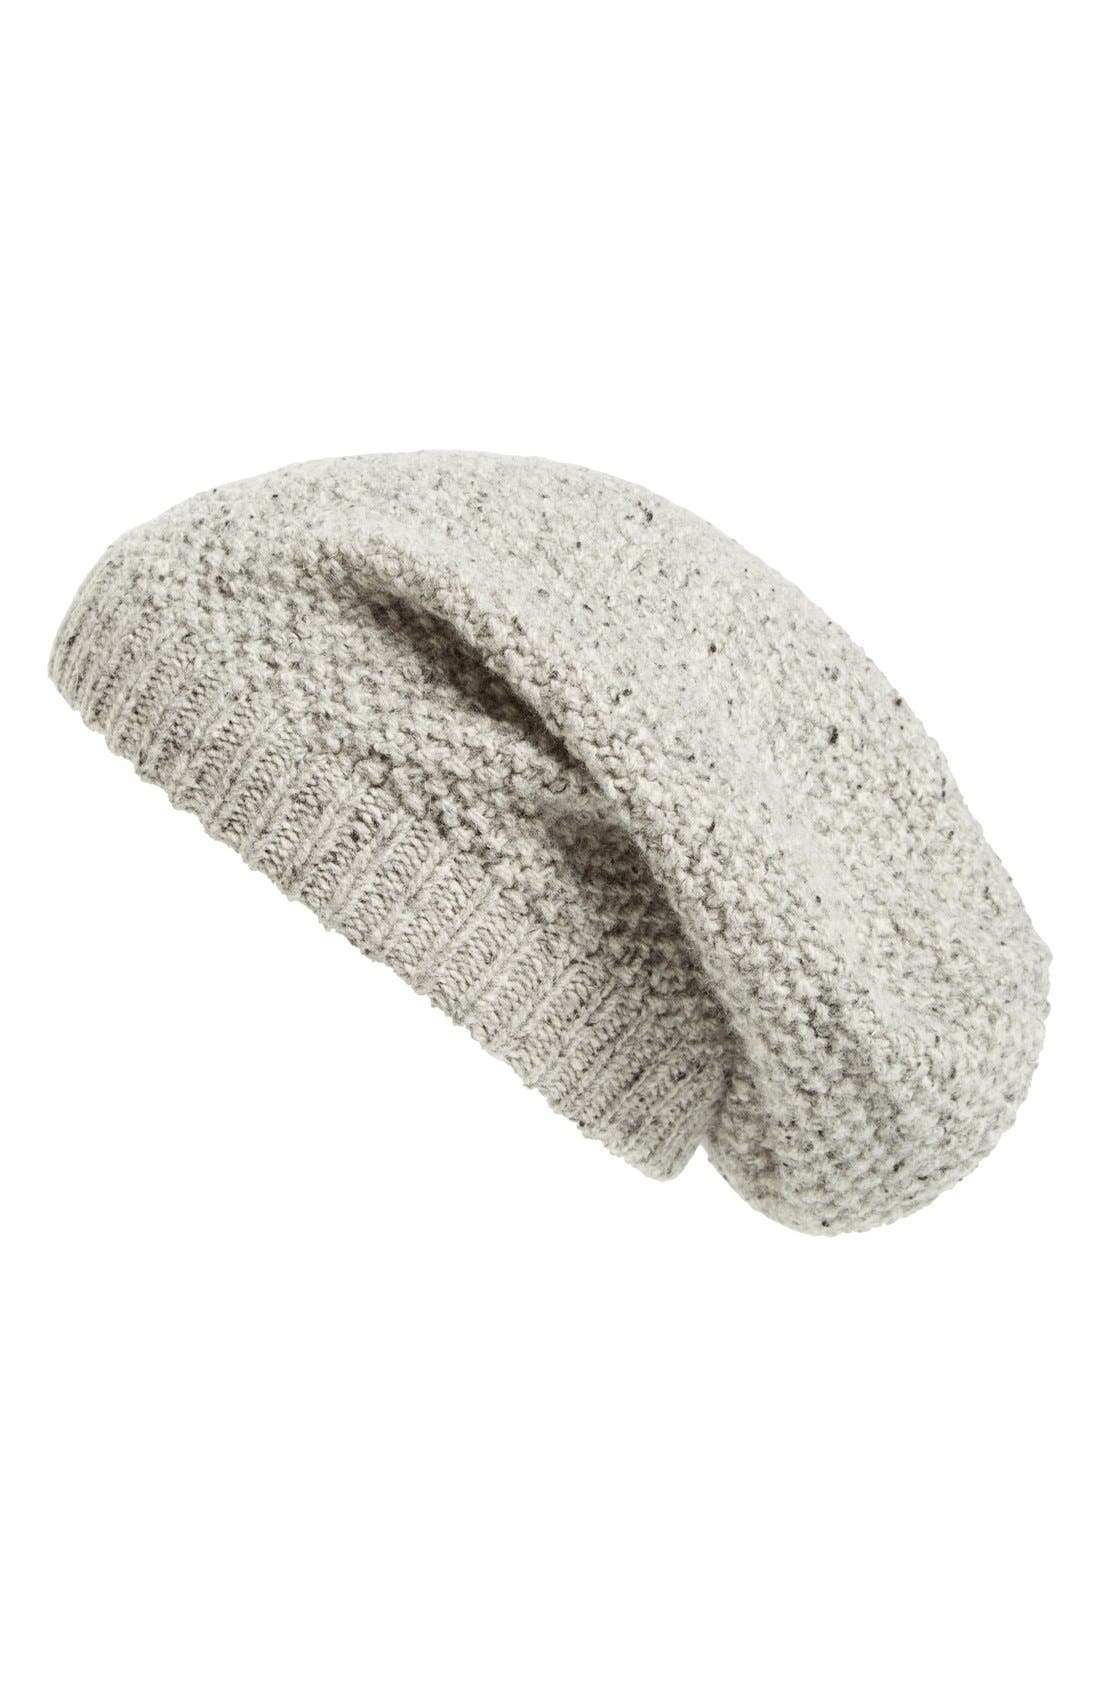 Alternate Image 1 Selected - Sole Society Knit Beanie